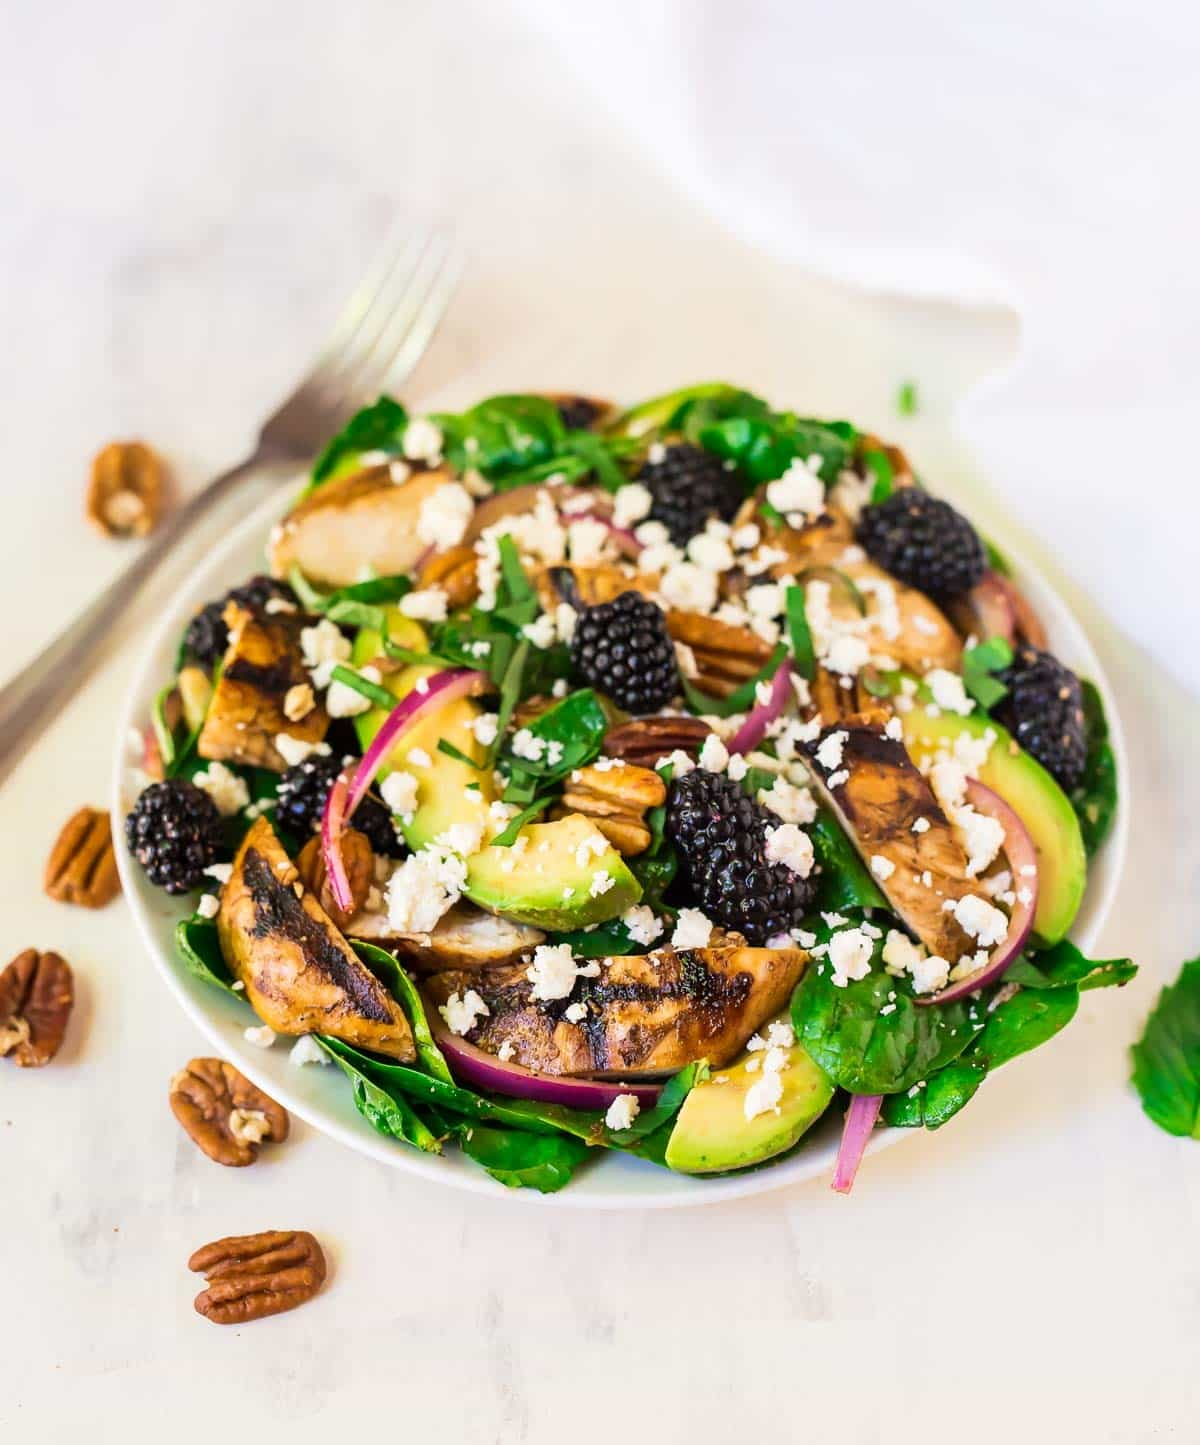 Grilled Blackberry Balsamic Chicken Salad – loaded with fresh berries, avocado, feta, pecans, and a light and easy balsamic vinaigrette dressing. Recipe at wellplated.com | @wellplated